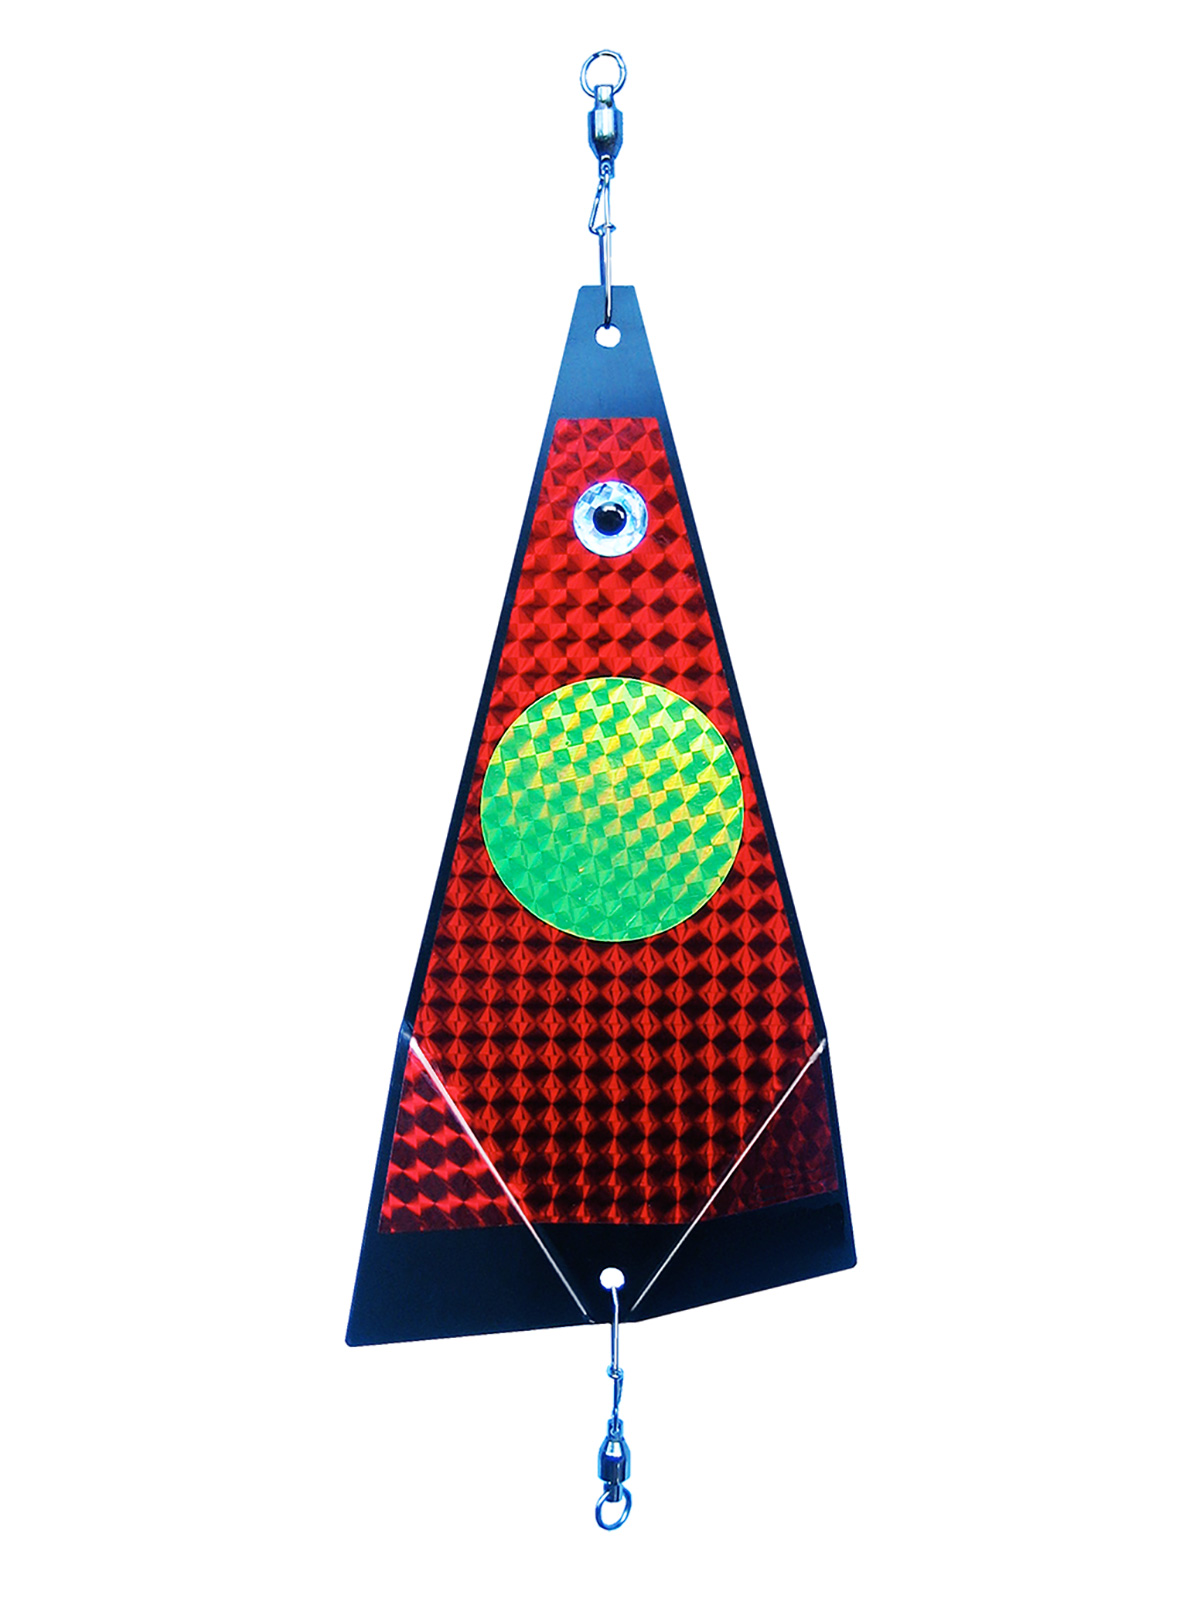 ko chartreuse dot on red fishing lure